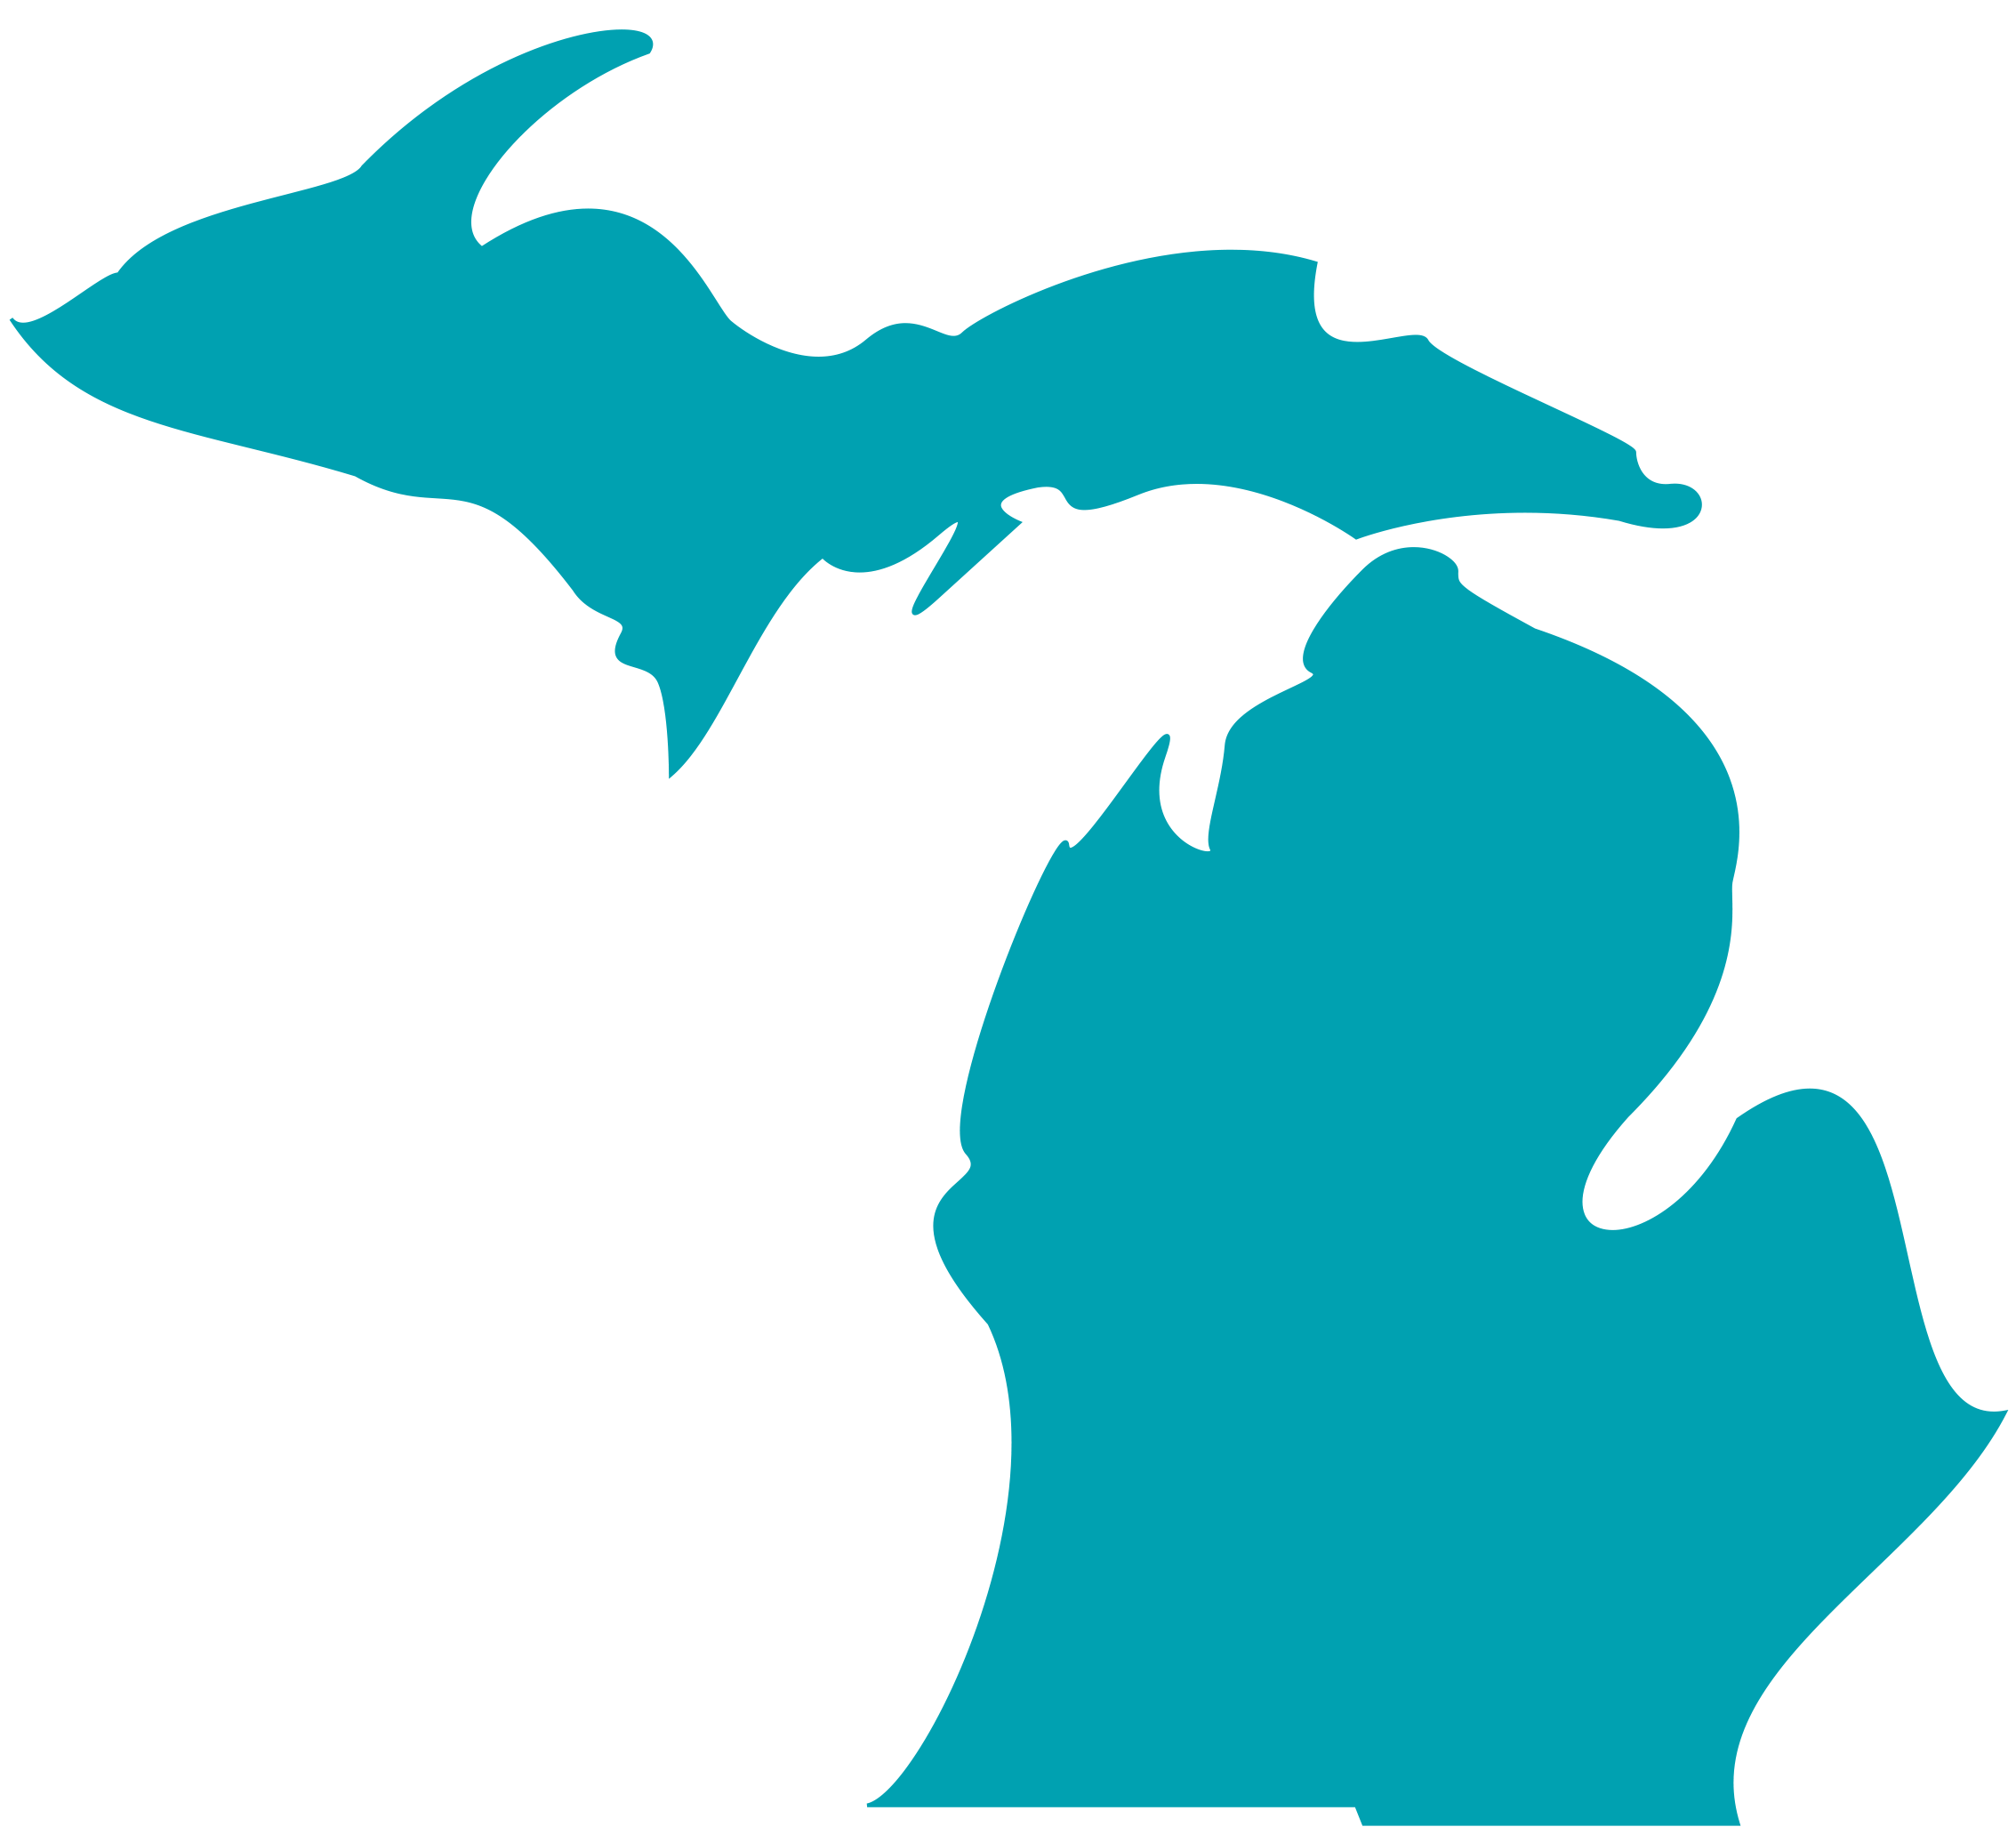 picture freeuse download Our story . Michigan clipart shape.